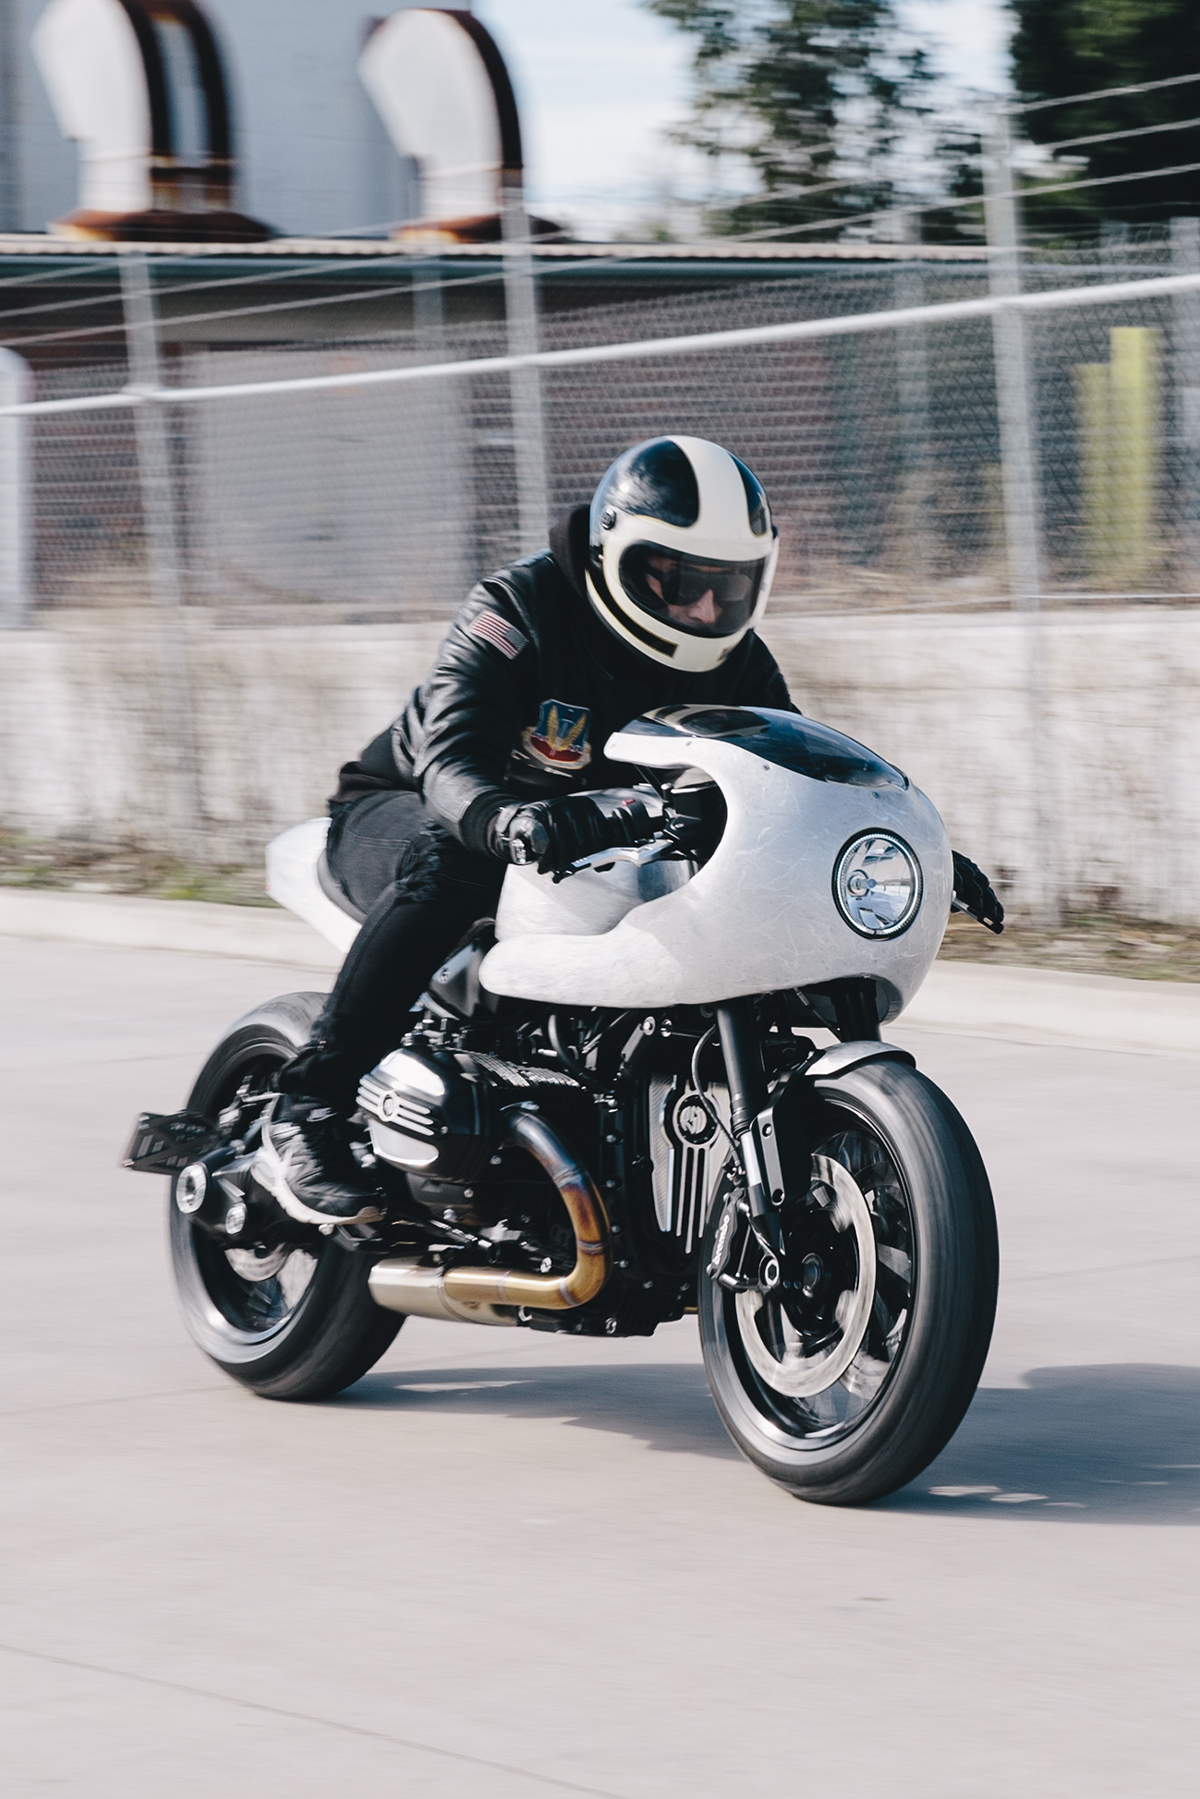 BMW_RNineT_Cafe_Racer_7462